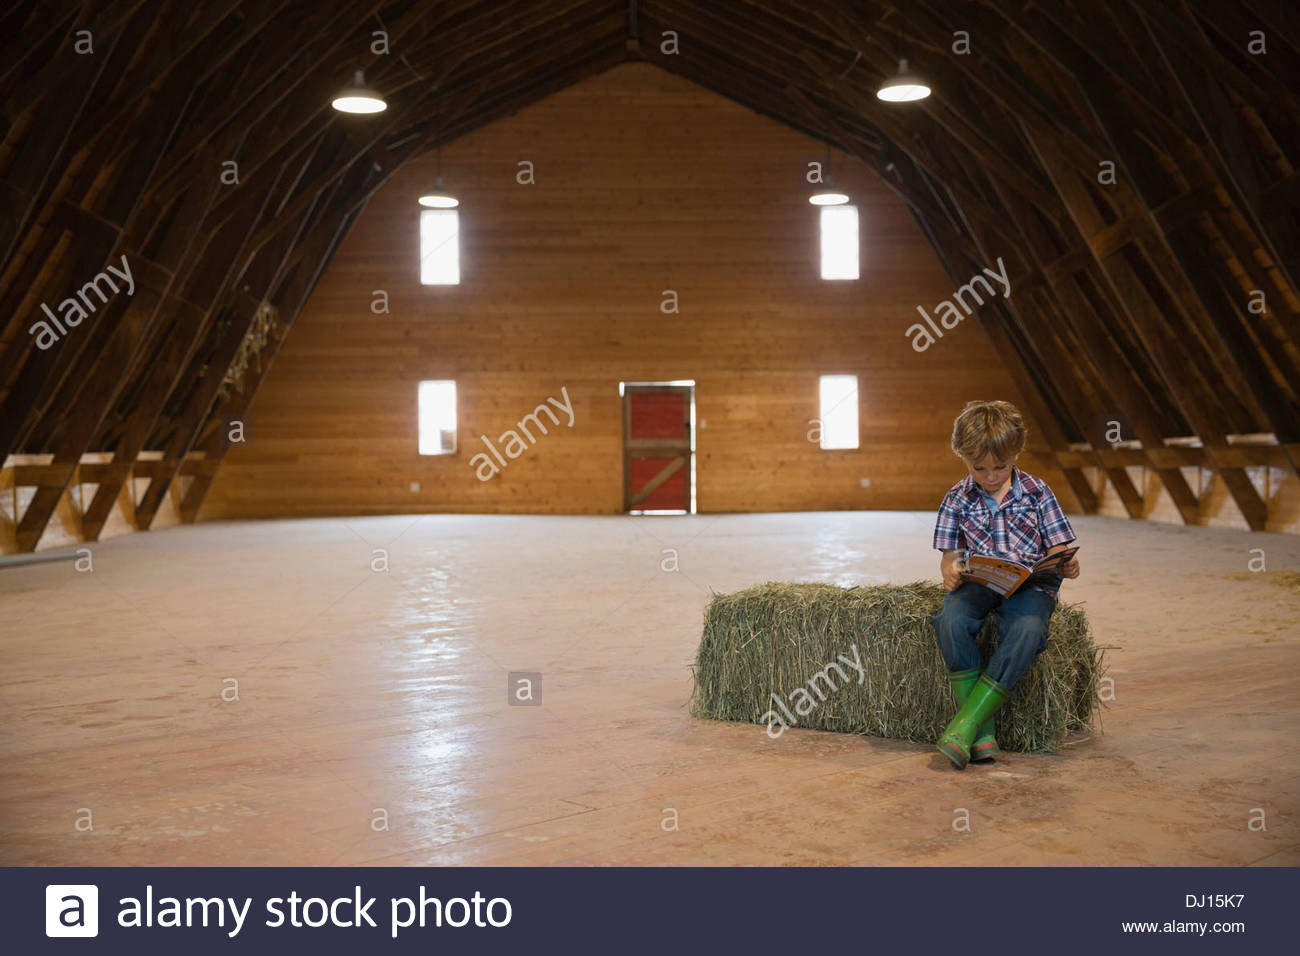 Boy reading book on hay bale in barn - Stock Image